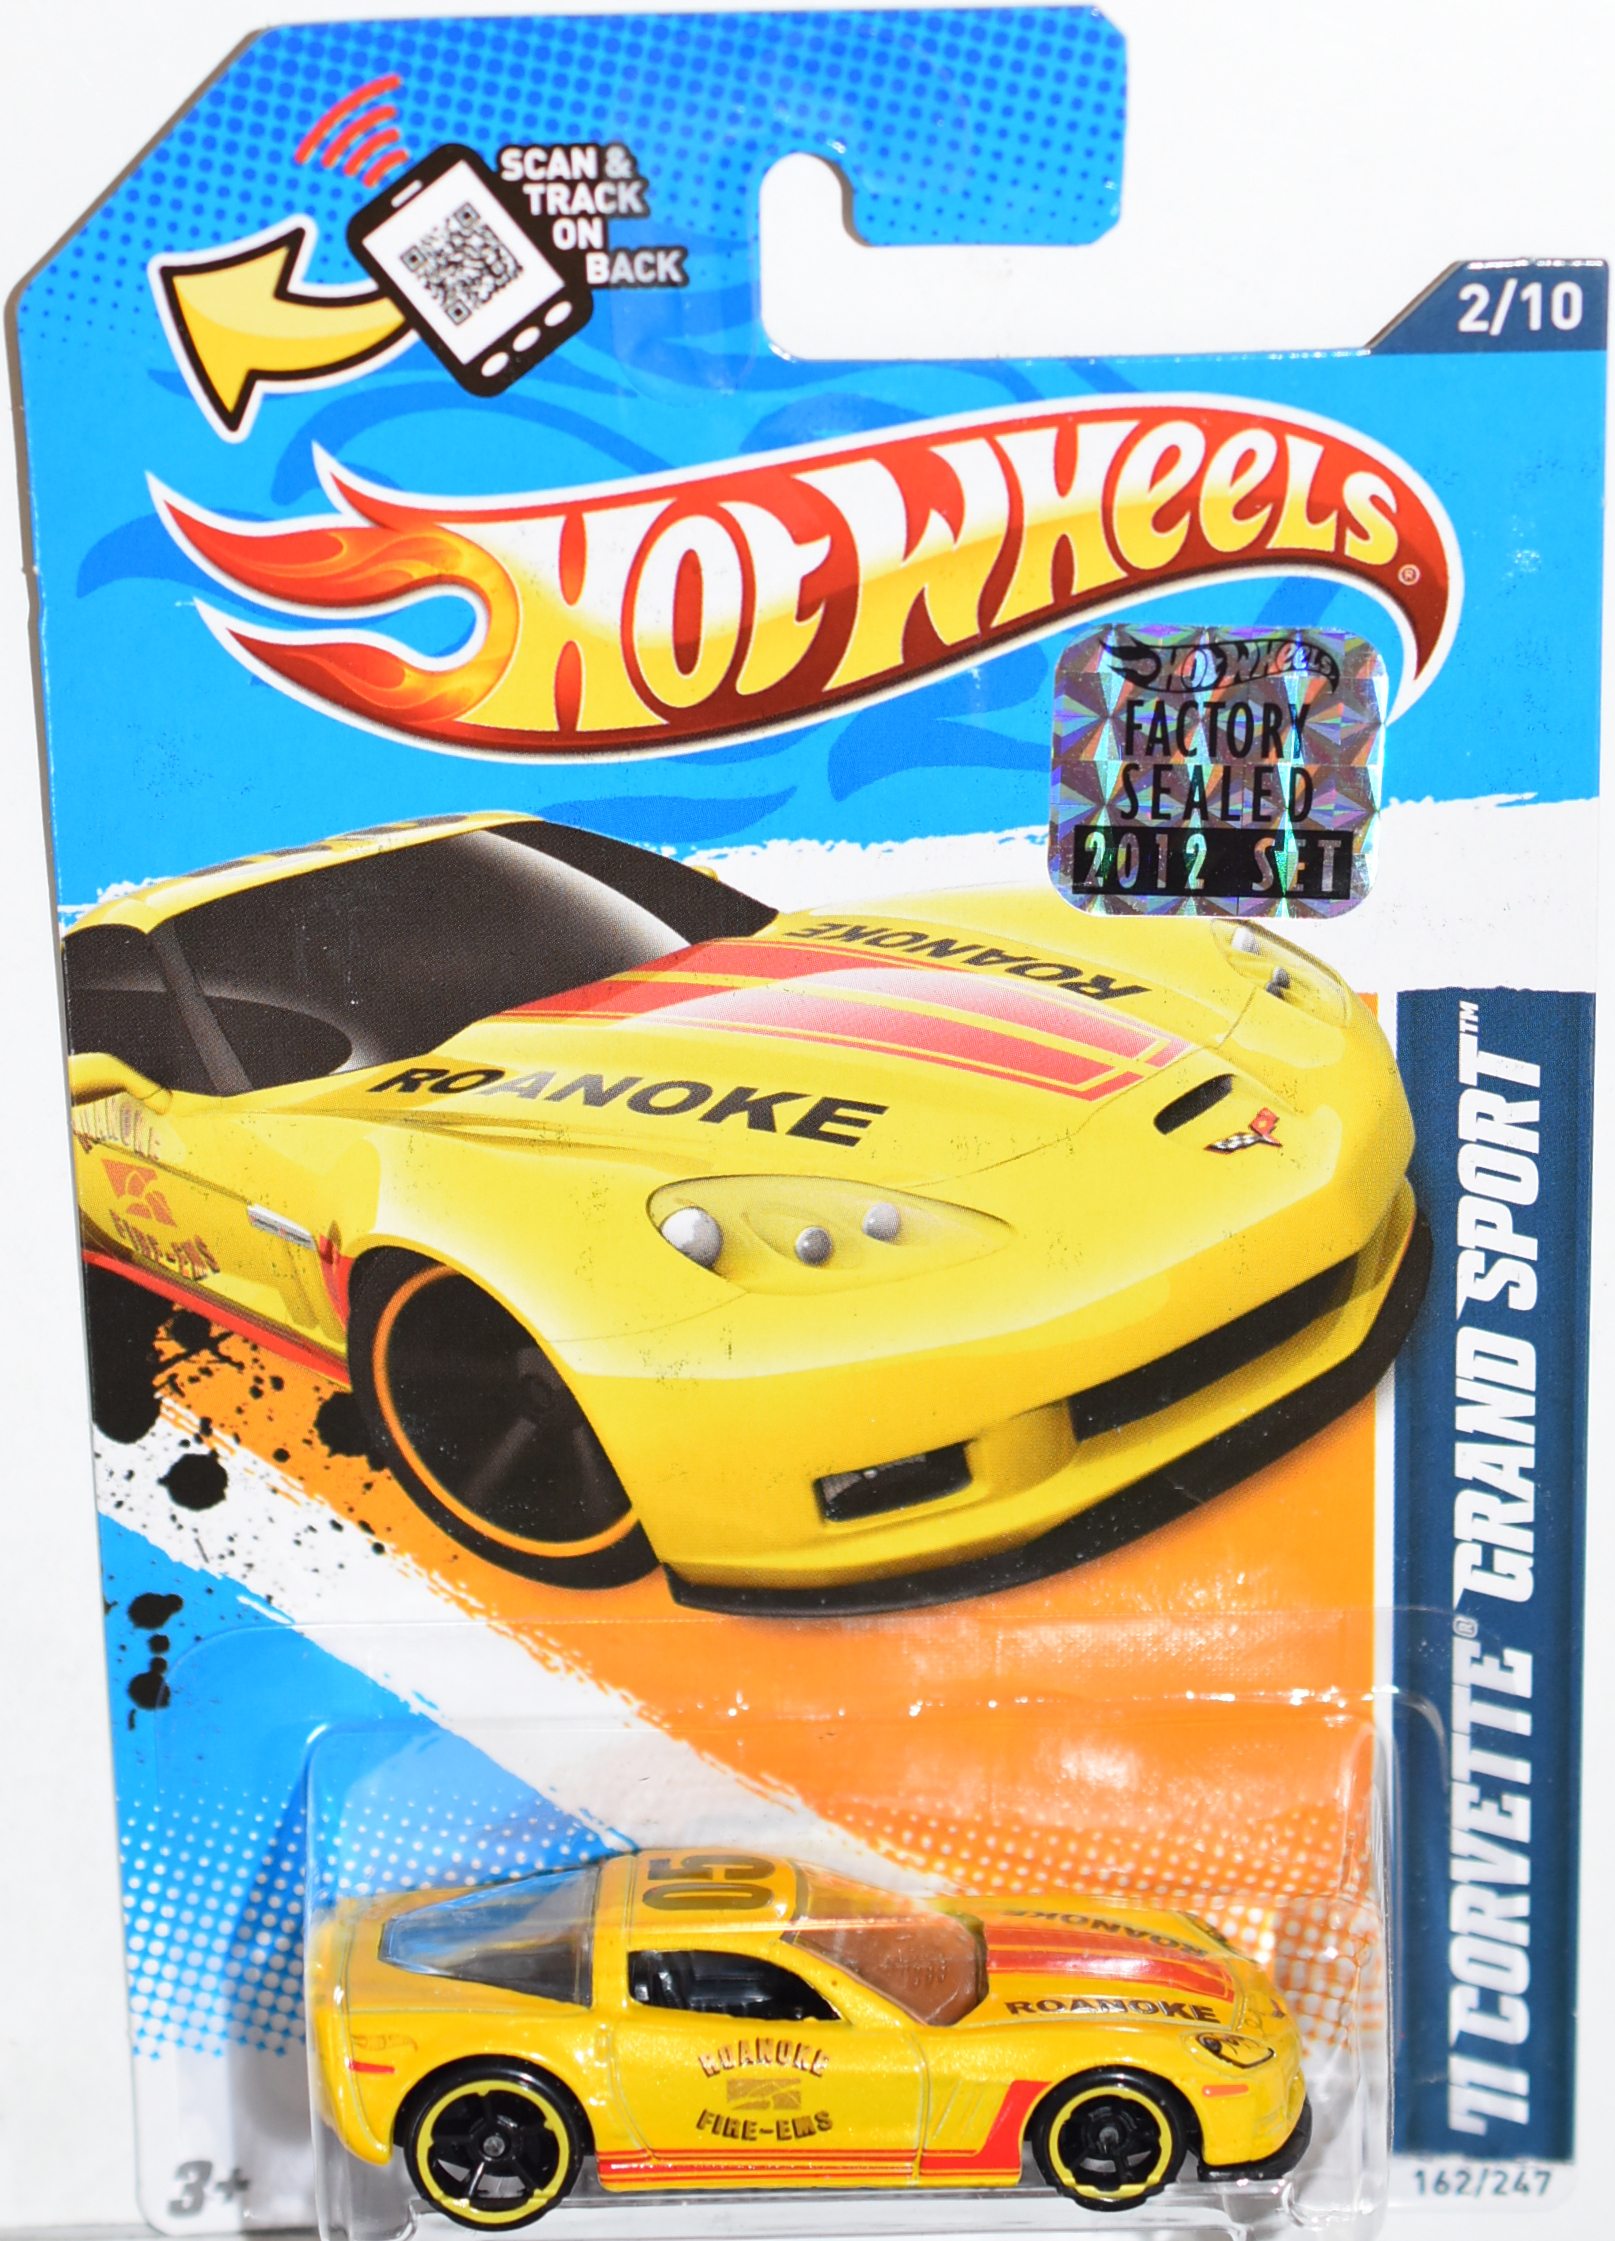 HOT WHEELS 2012 '11 CORVETTE GRAND SPORT TOY R US EXCLUSIVE FACTORY SEALED